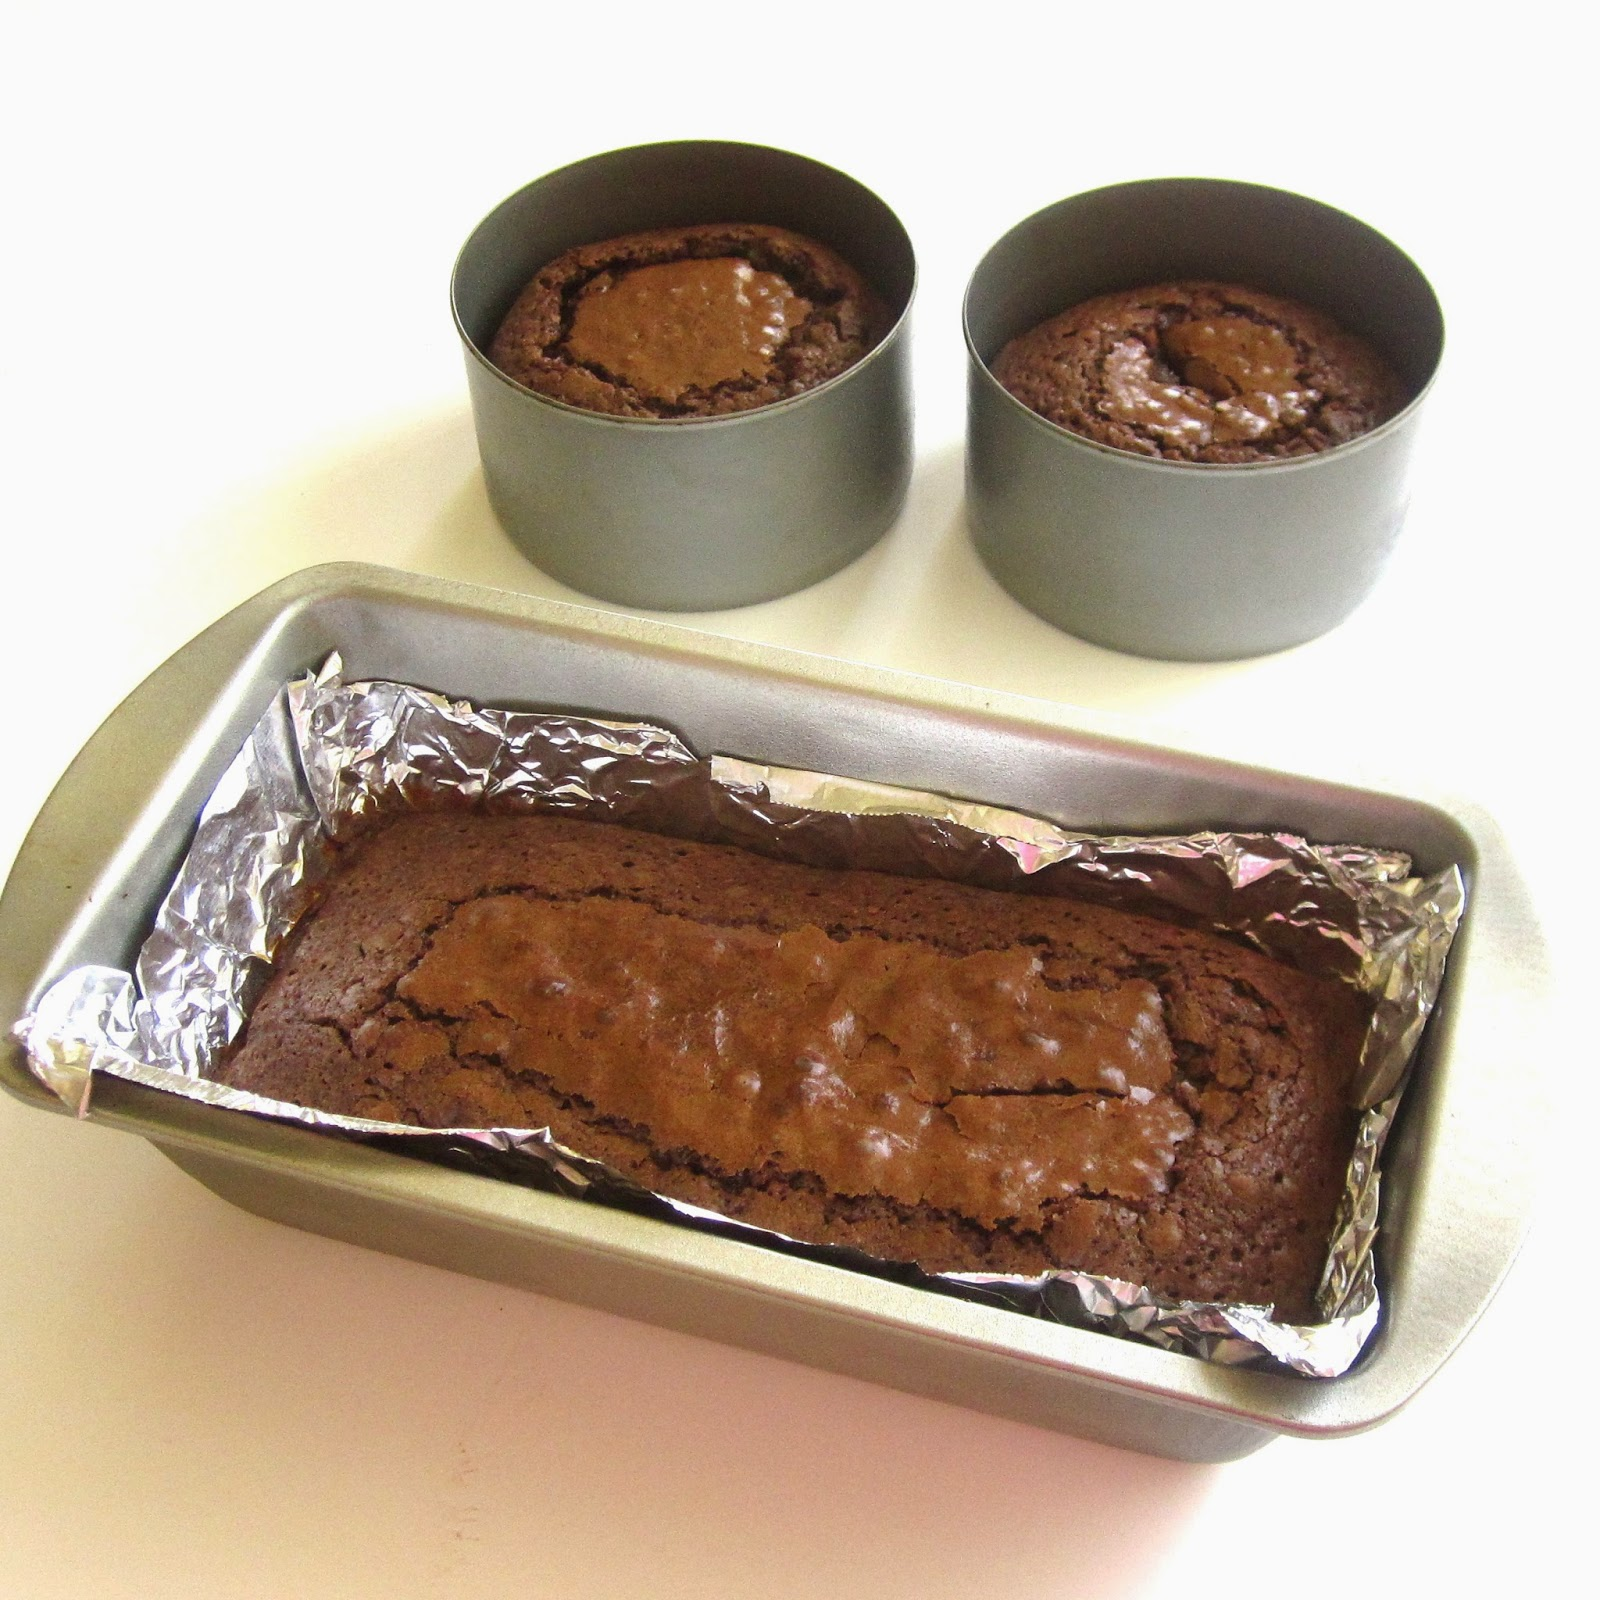 Can I Line Cake Tin With Foil